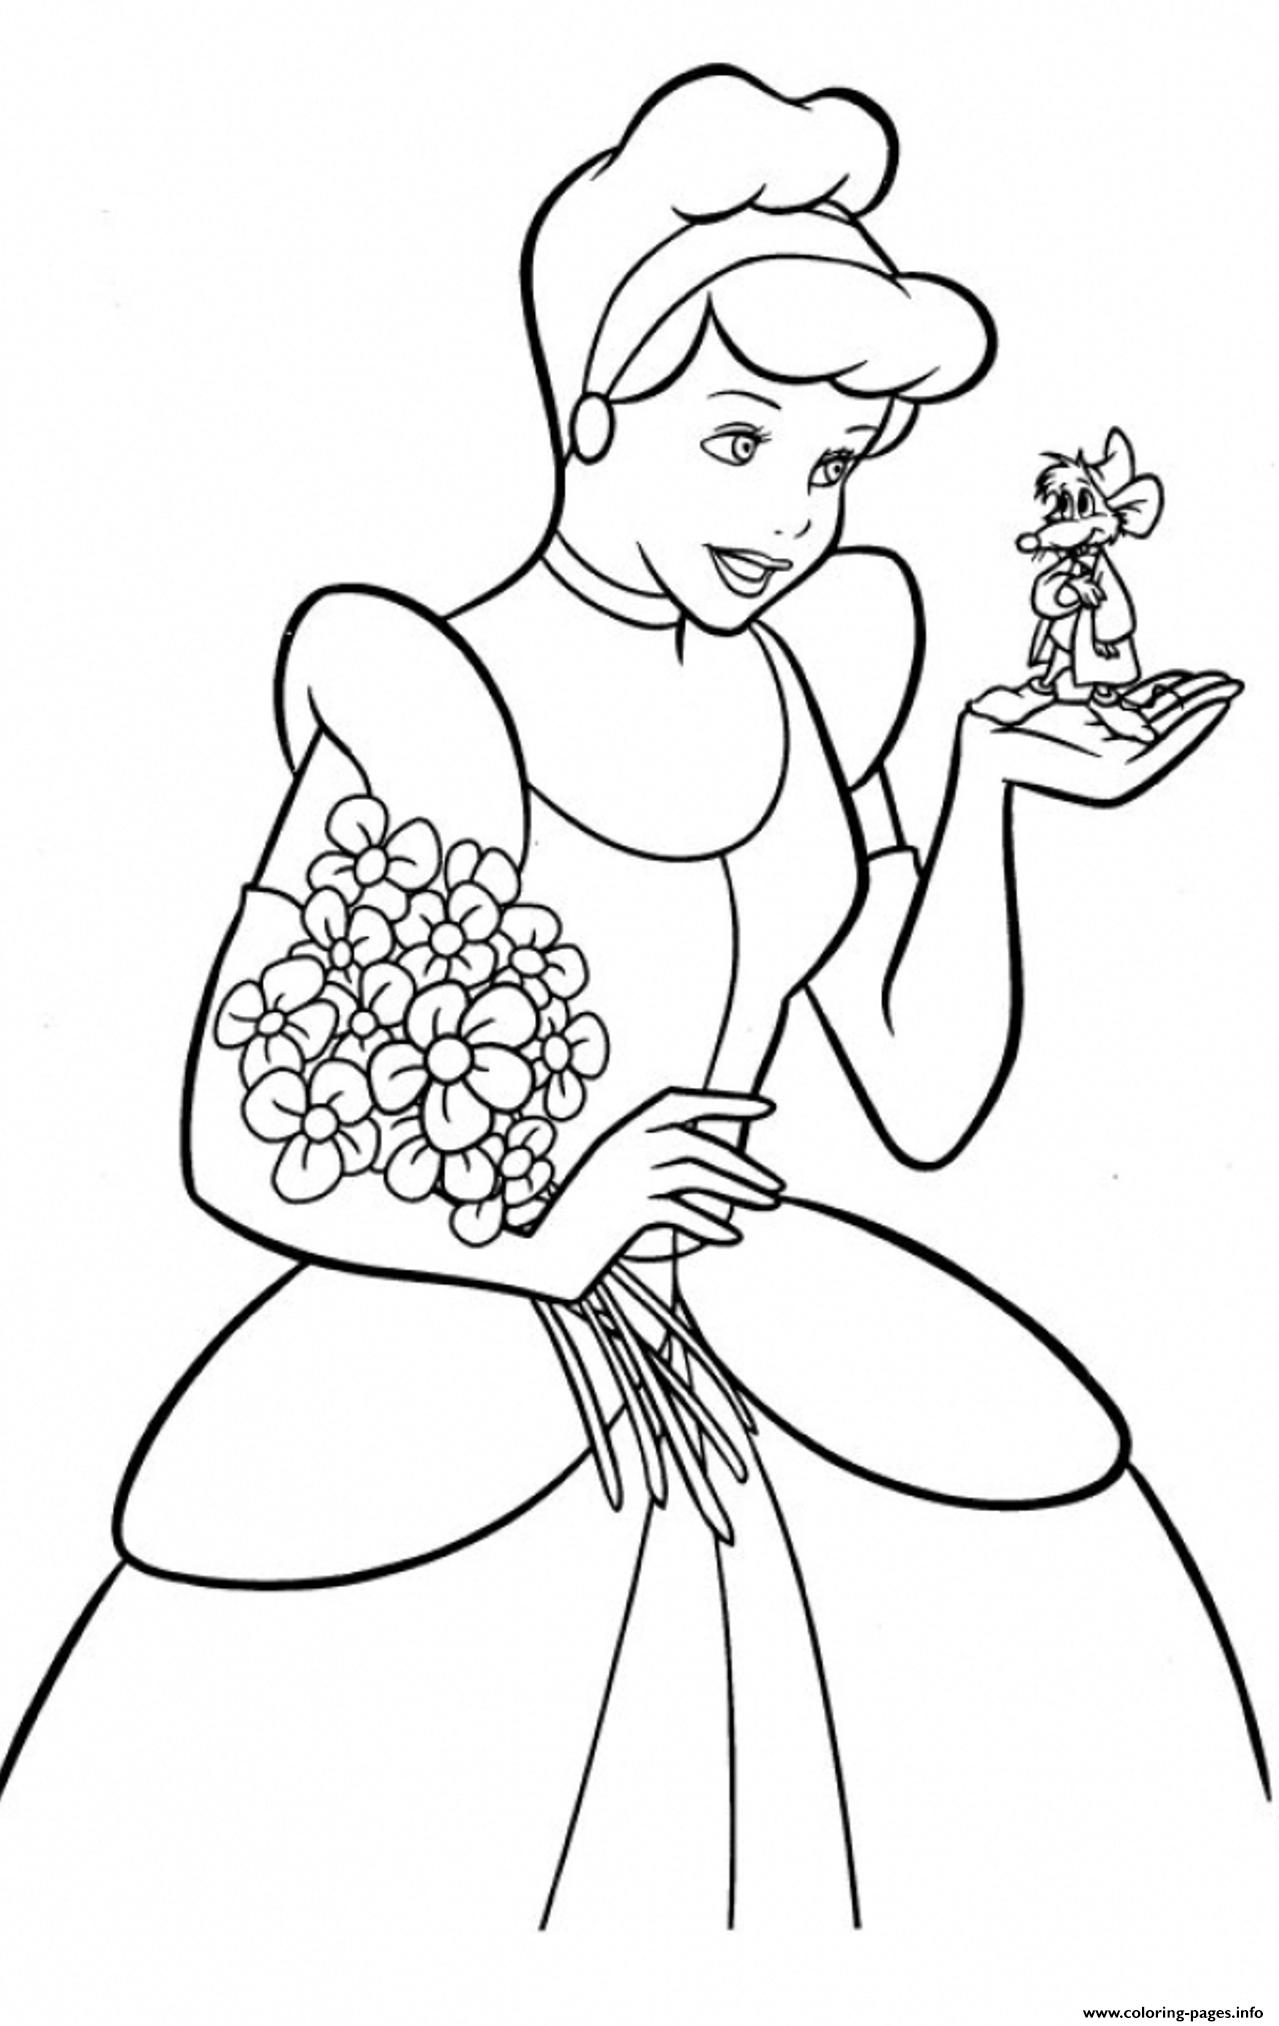 coloring cinderella pictures 30 free printable cinderella coloring pages coloring pictures cinderella